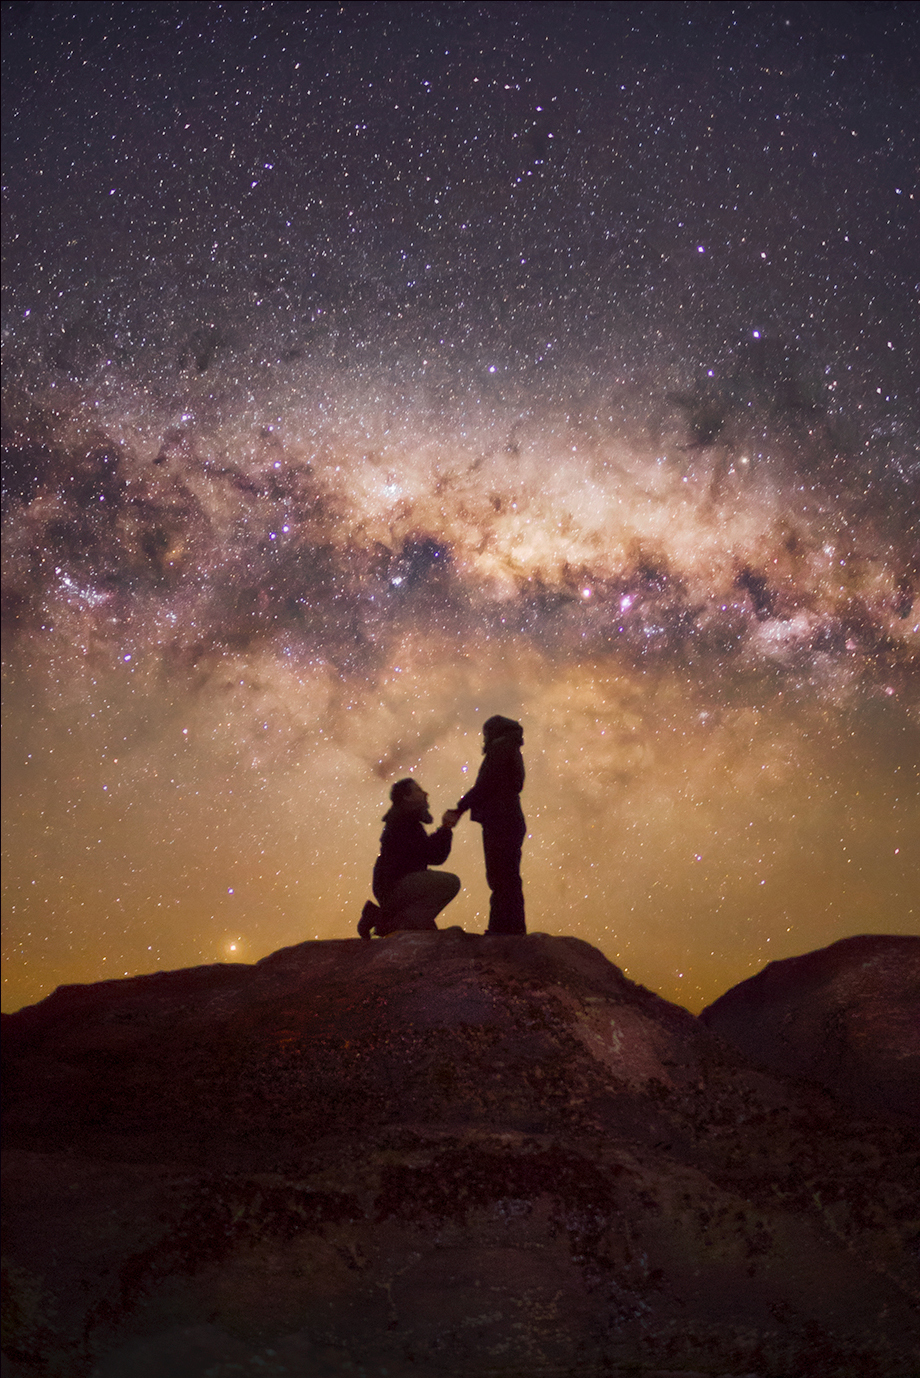 Starry Valentine: A Galactic Proposal & More Romantic Astrophotography